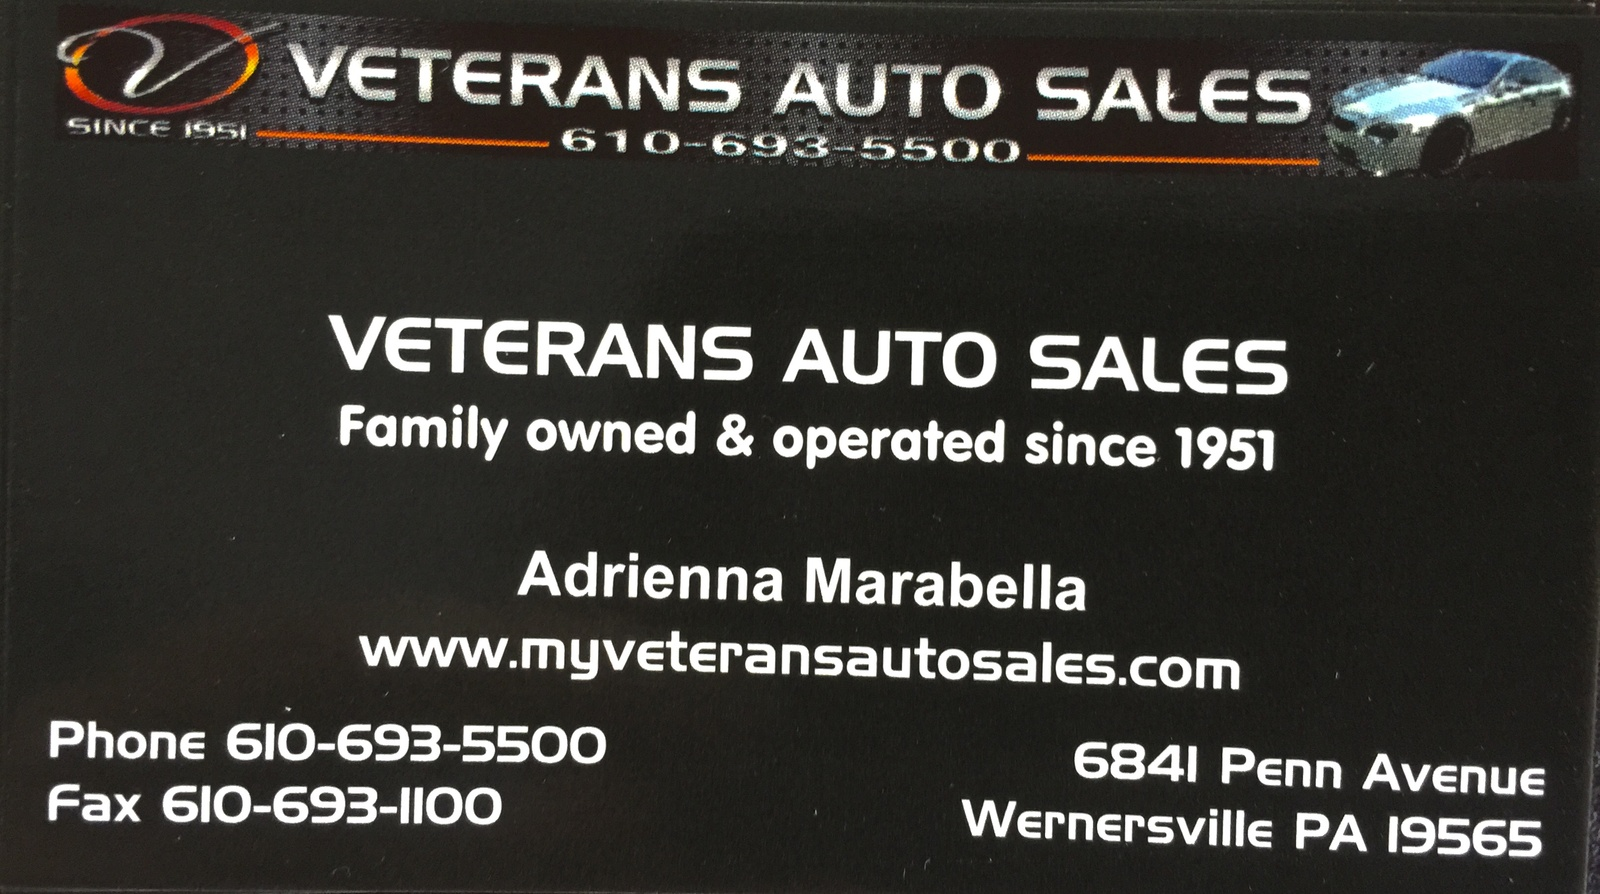 Veterans Auto Sales - Wernersville, PA: Read Consumer reviews ...